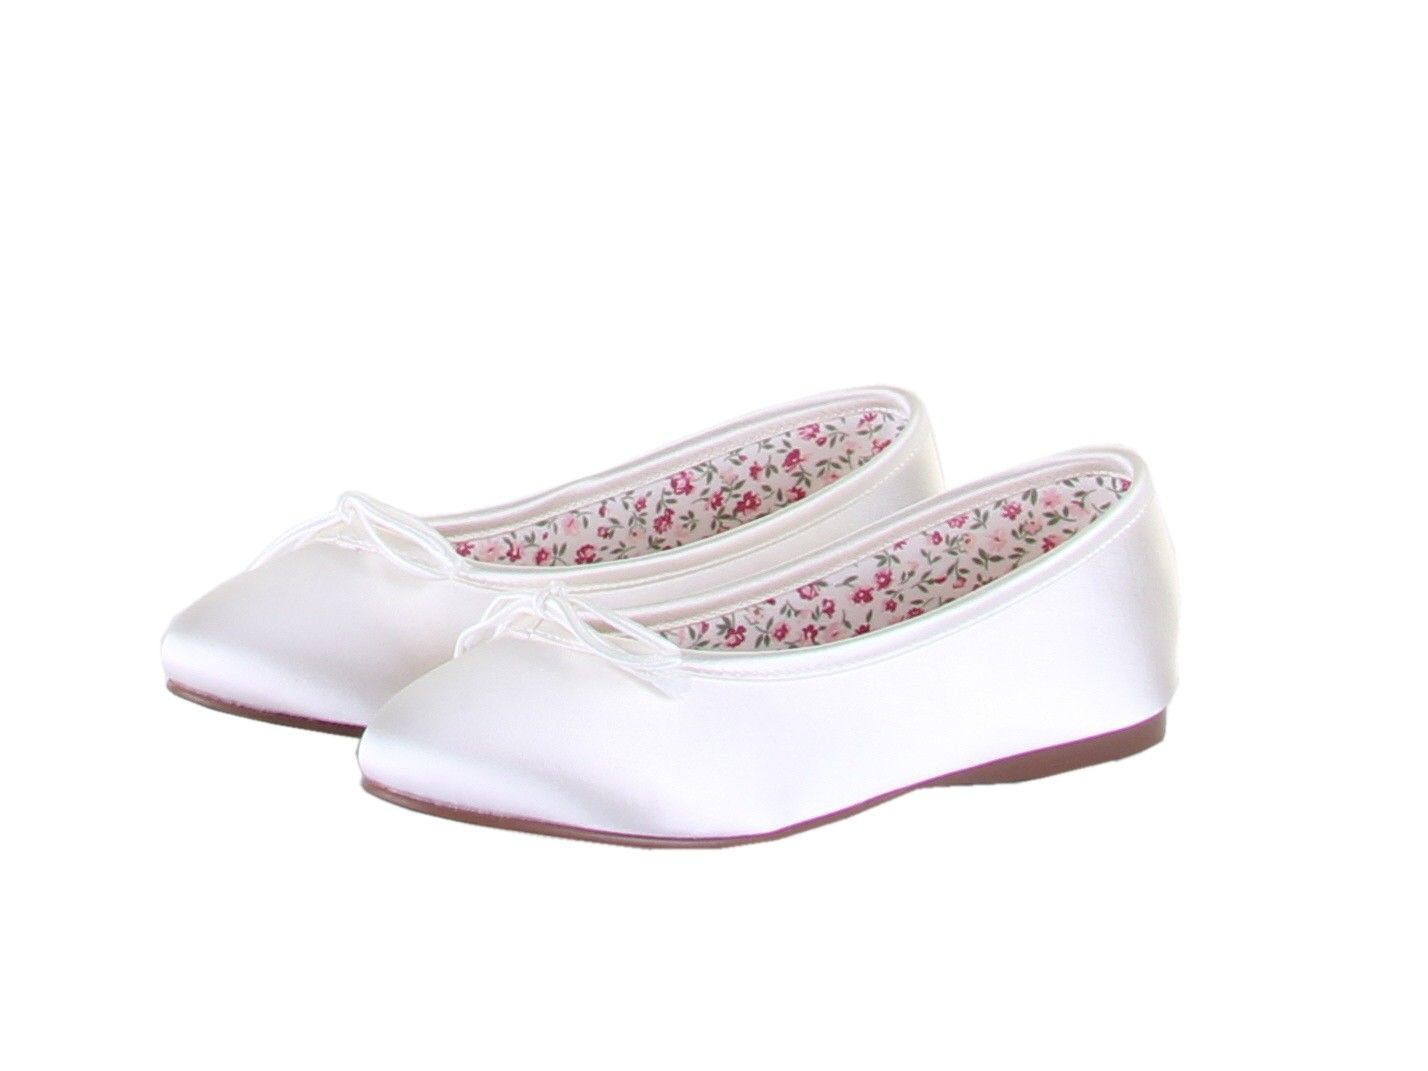 4de9e25cacbd Treacle - Ballet Pump Kids Shoes by Rainbow Club - Buy online from £29.00.